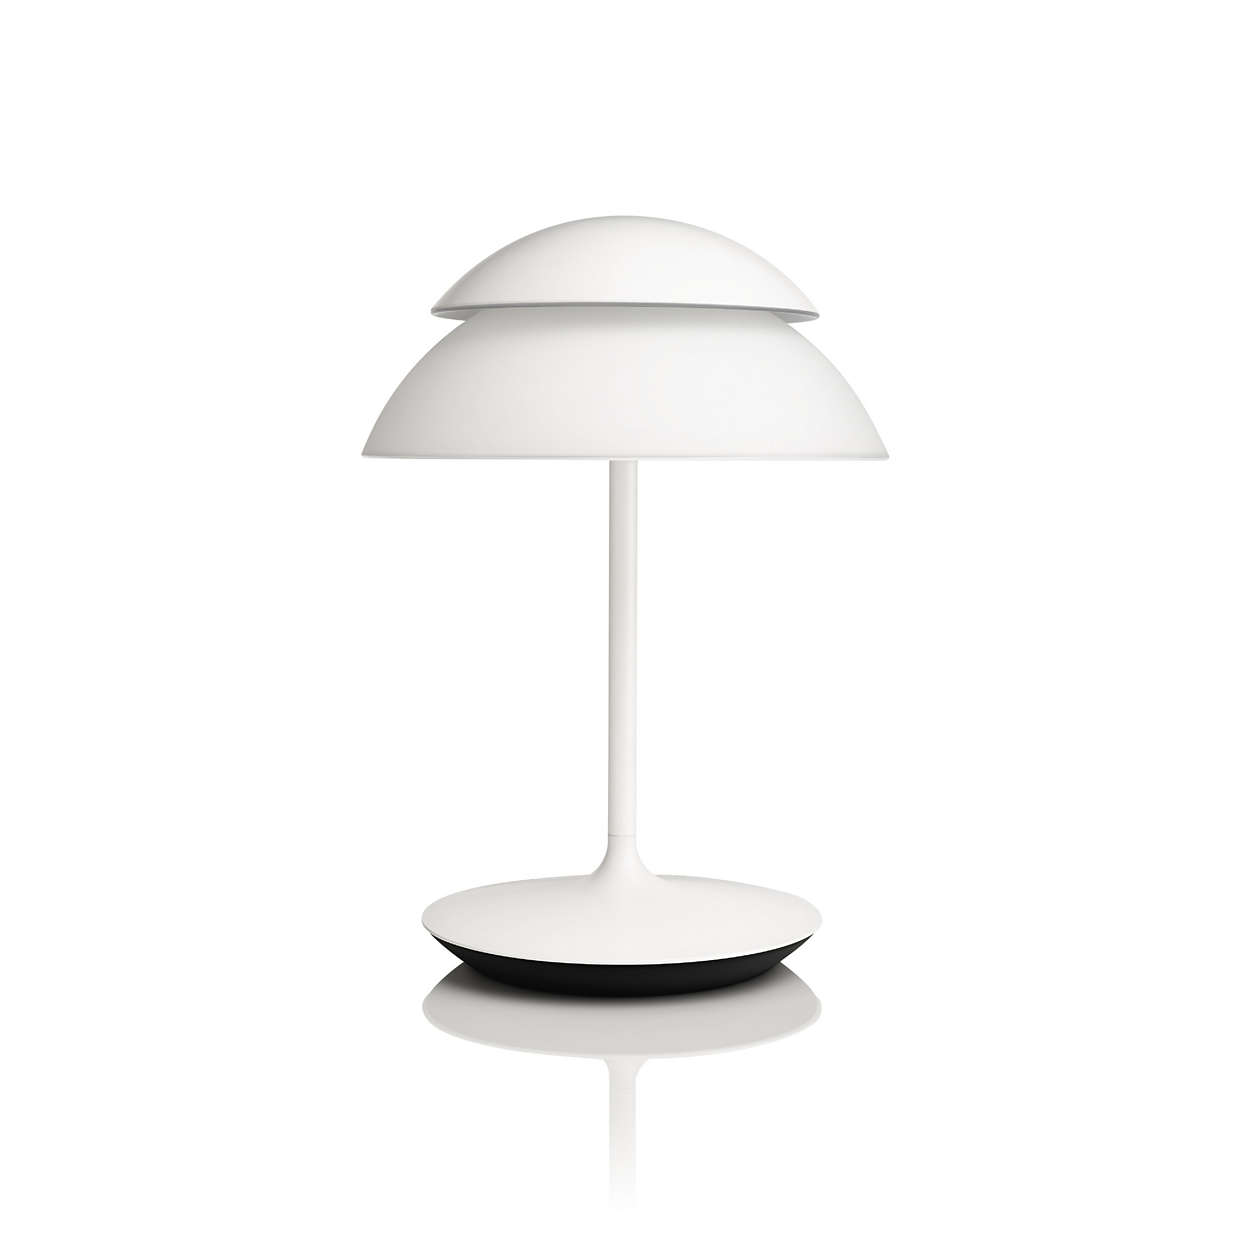 Hue white and color ambiance beyond table lamp 712023148 philips limitless possibilites aloadofball Gallery